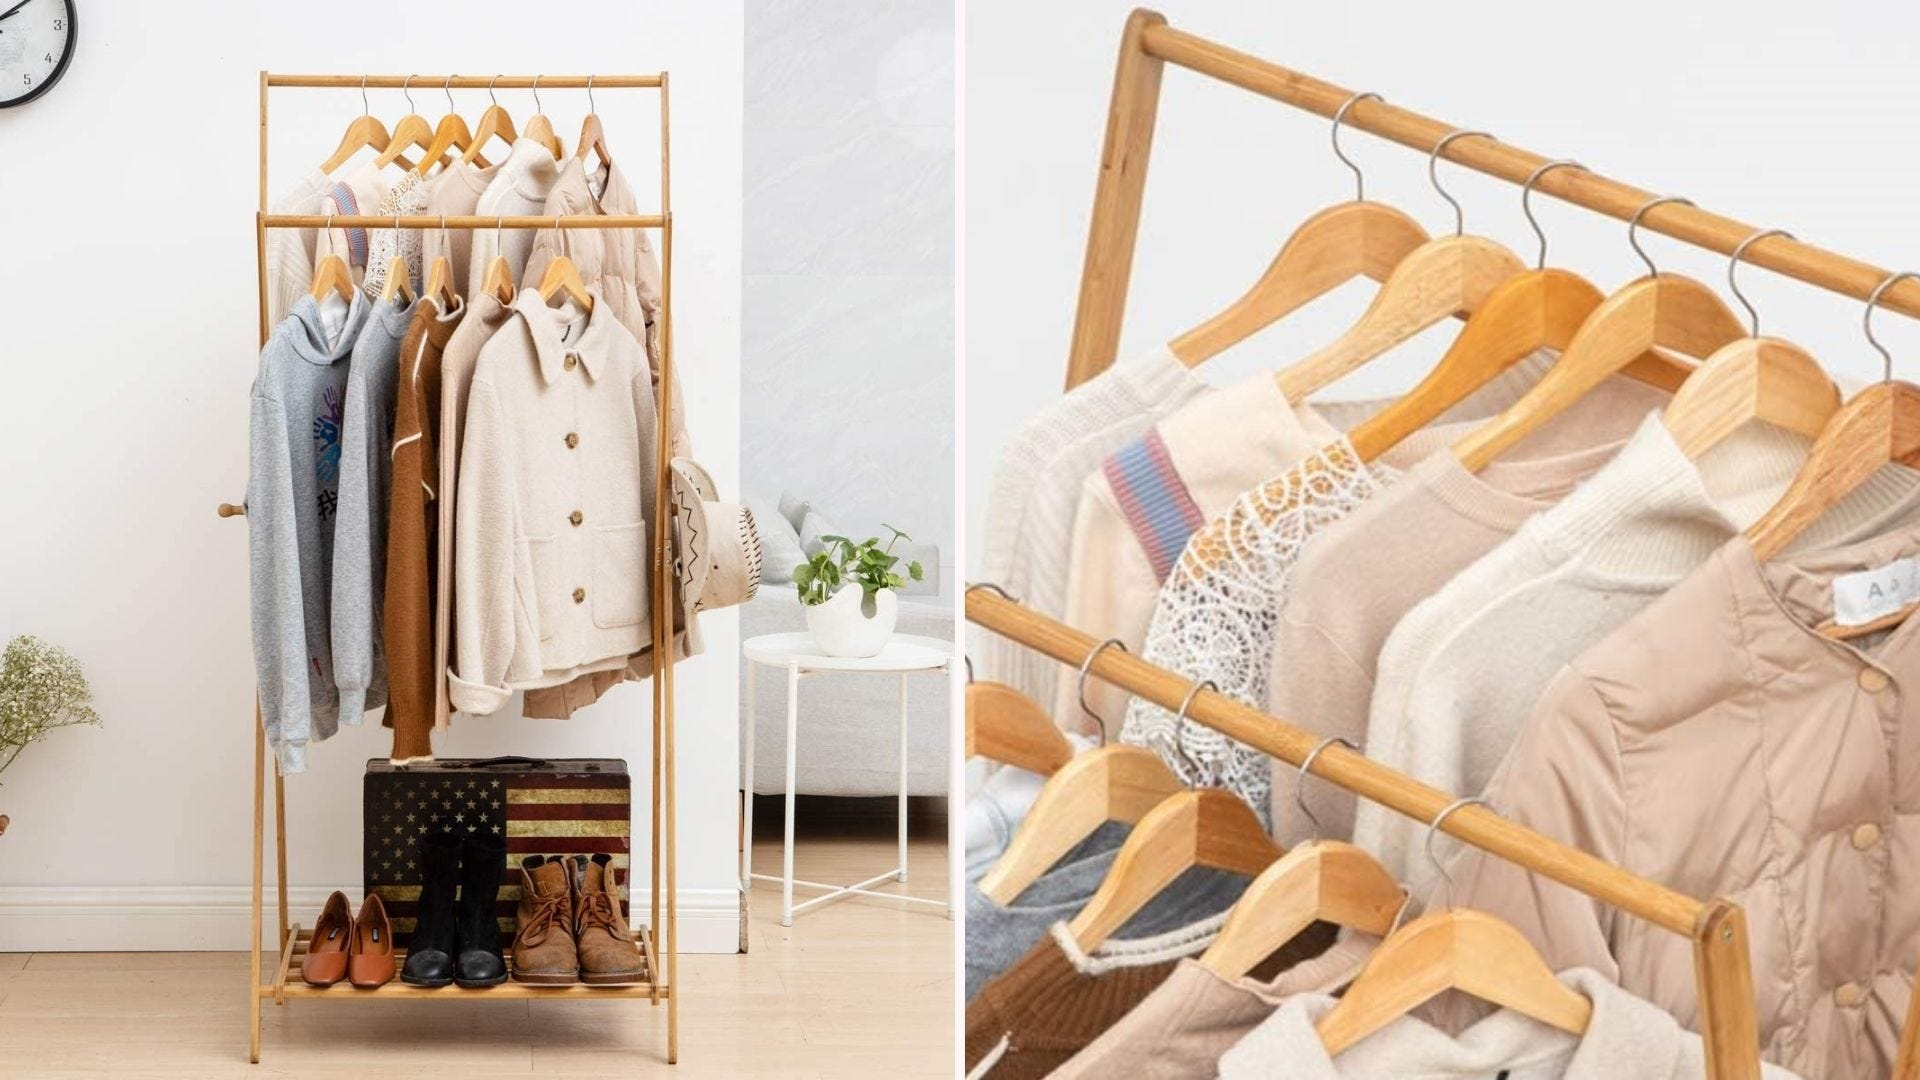 A foldable clothing rack with clothes on it.